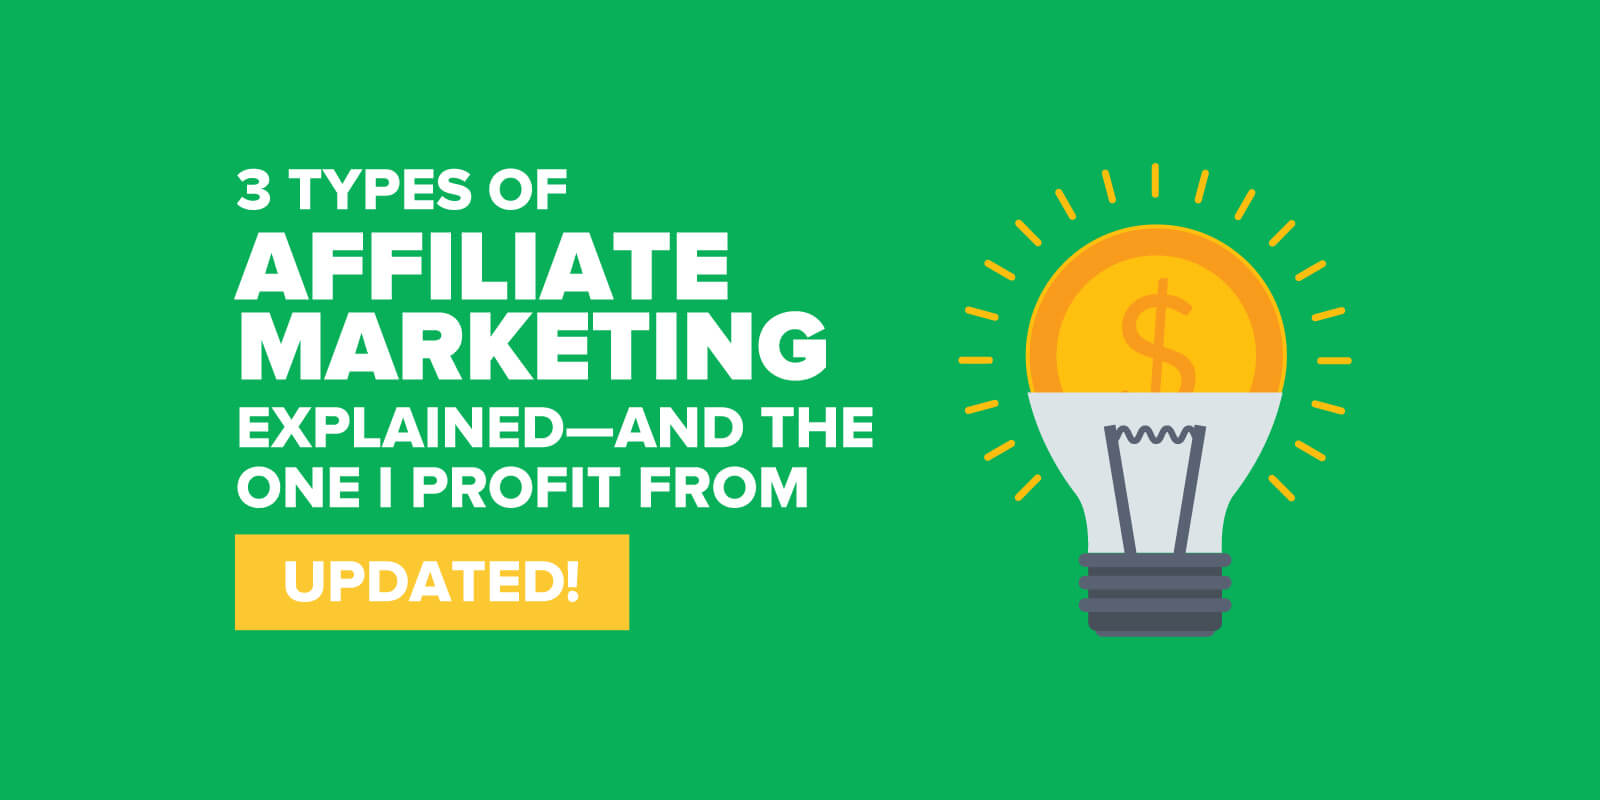 3 Types of Affiliate Marketing Explained—and The One I Profit From—UPDATED!